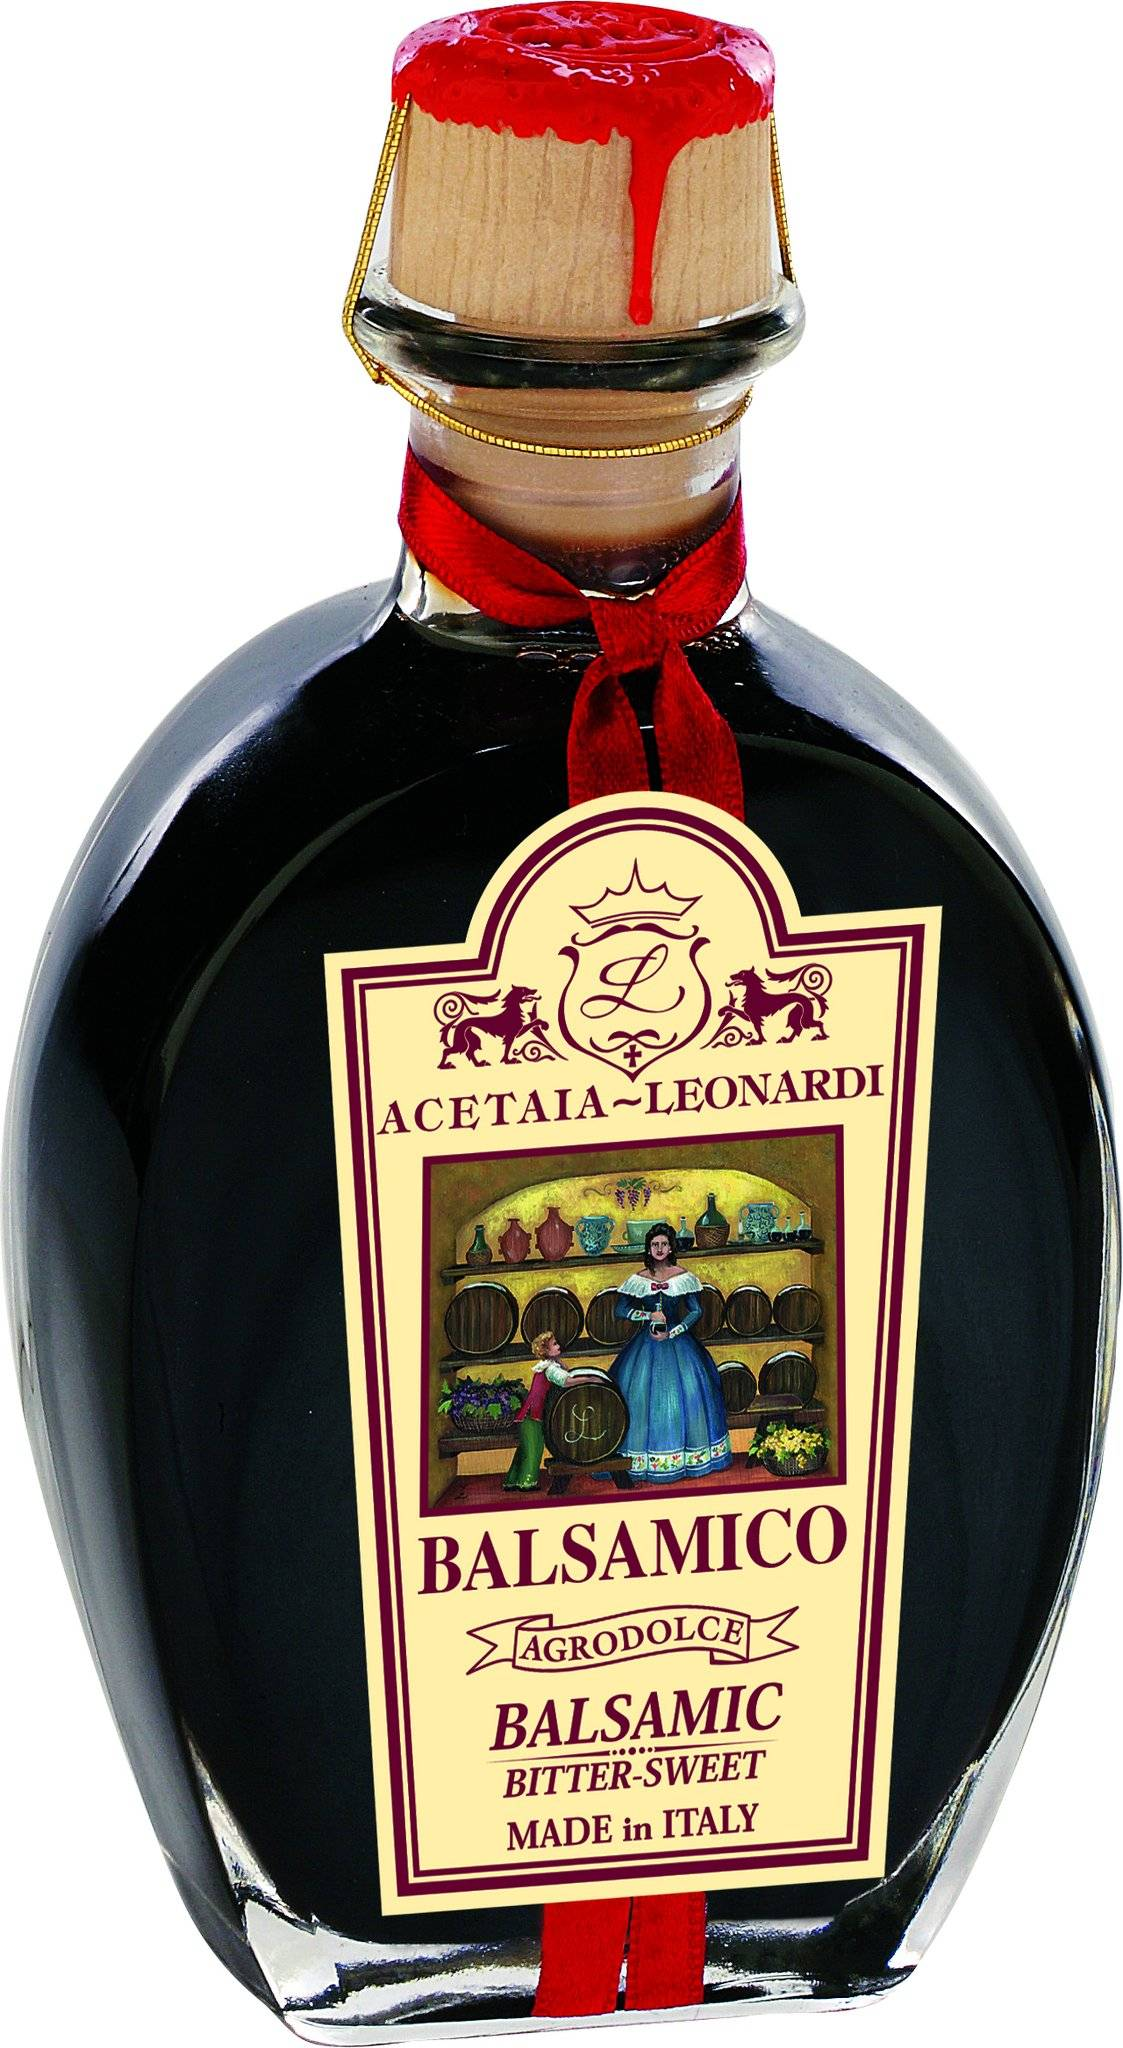 Condimento Balsamico -3- 5 year old